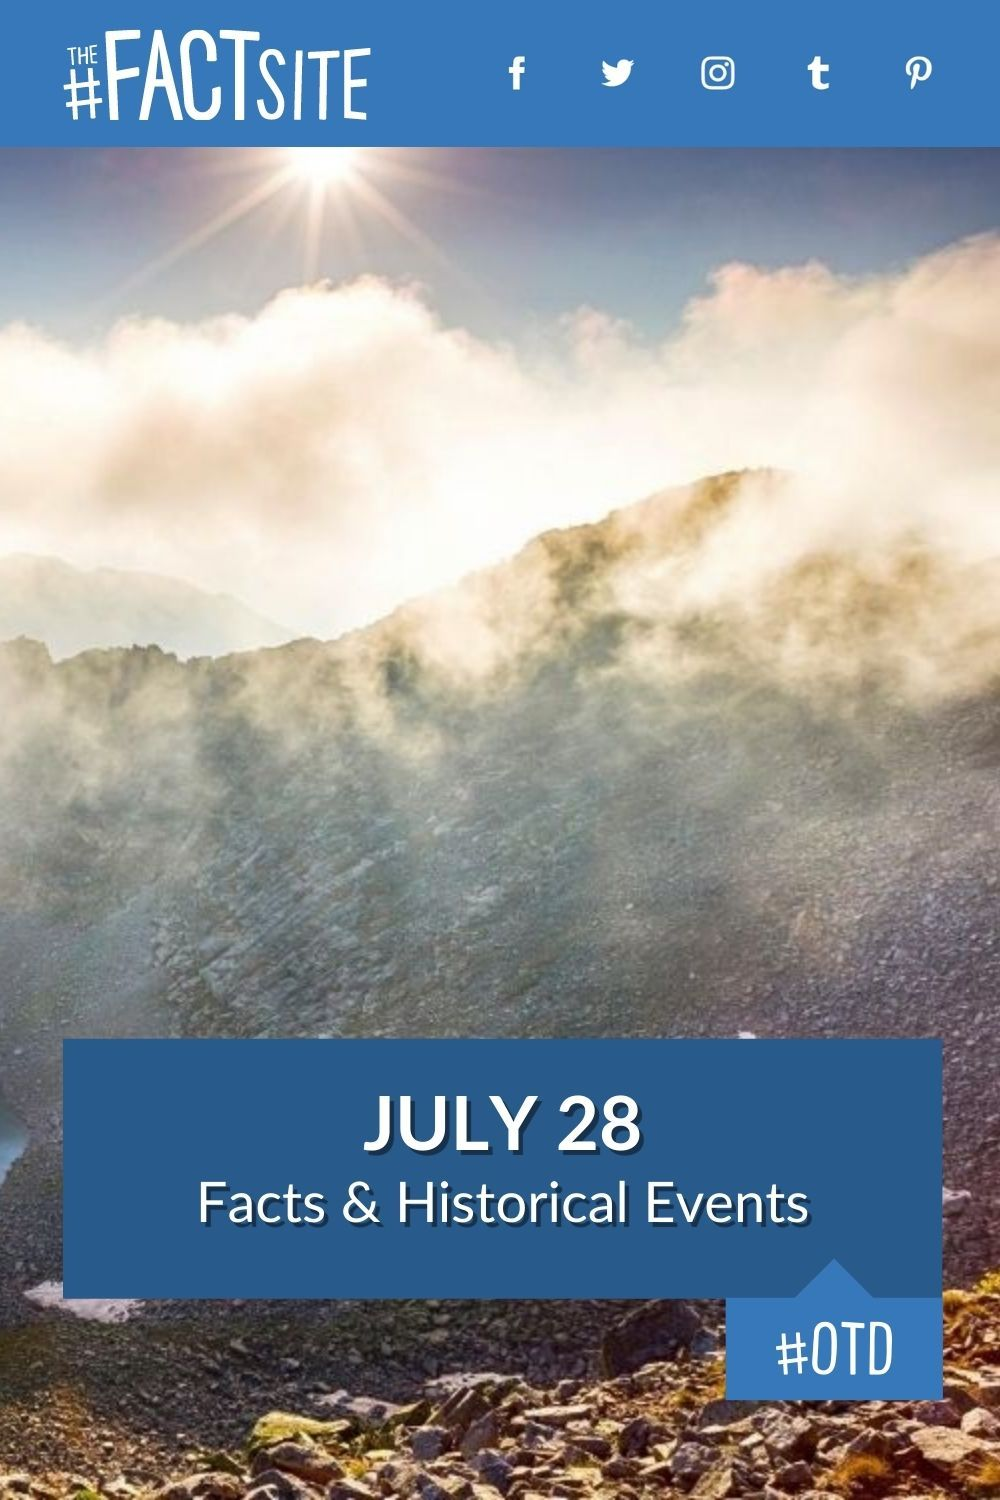 Facts & Historic Events That Happened on July 28